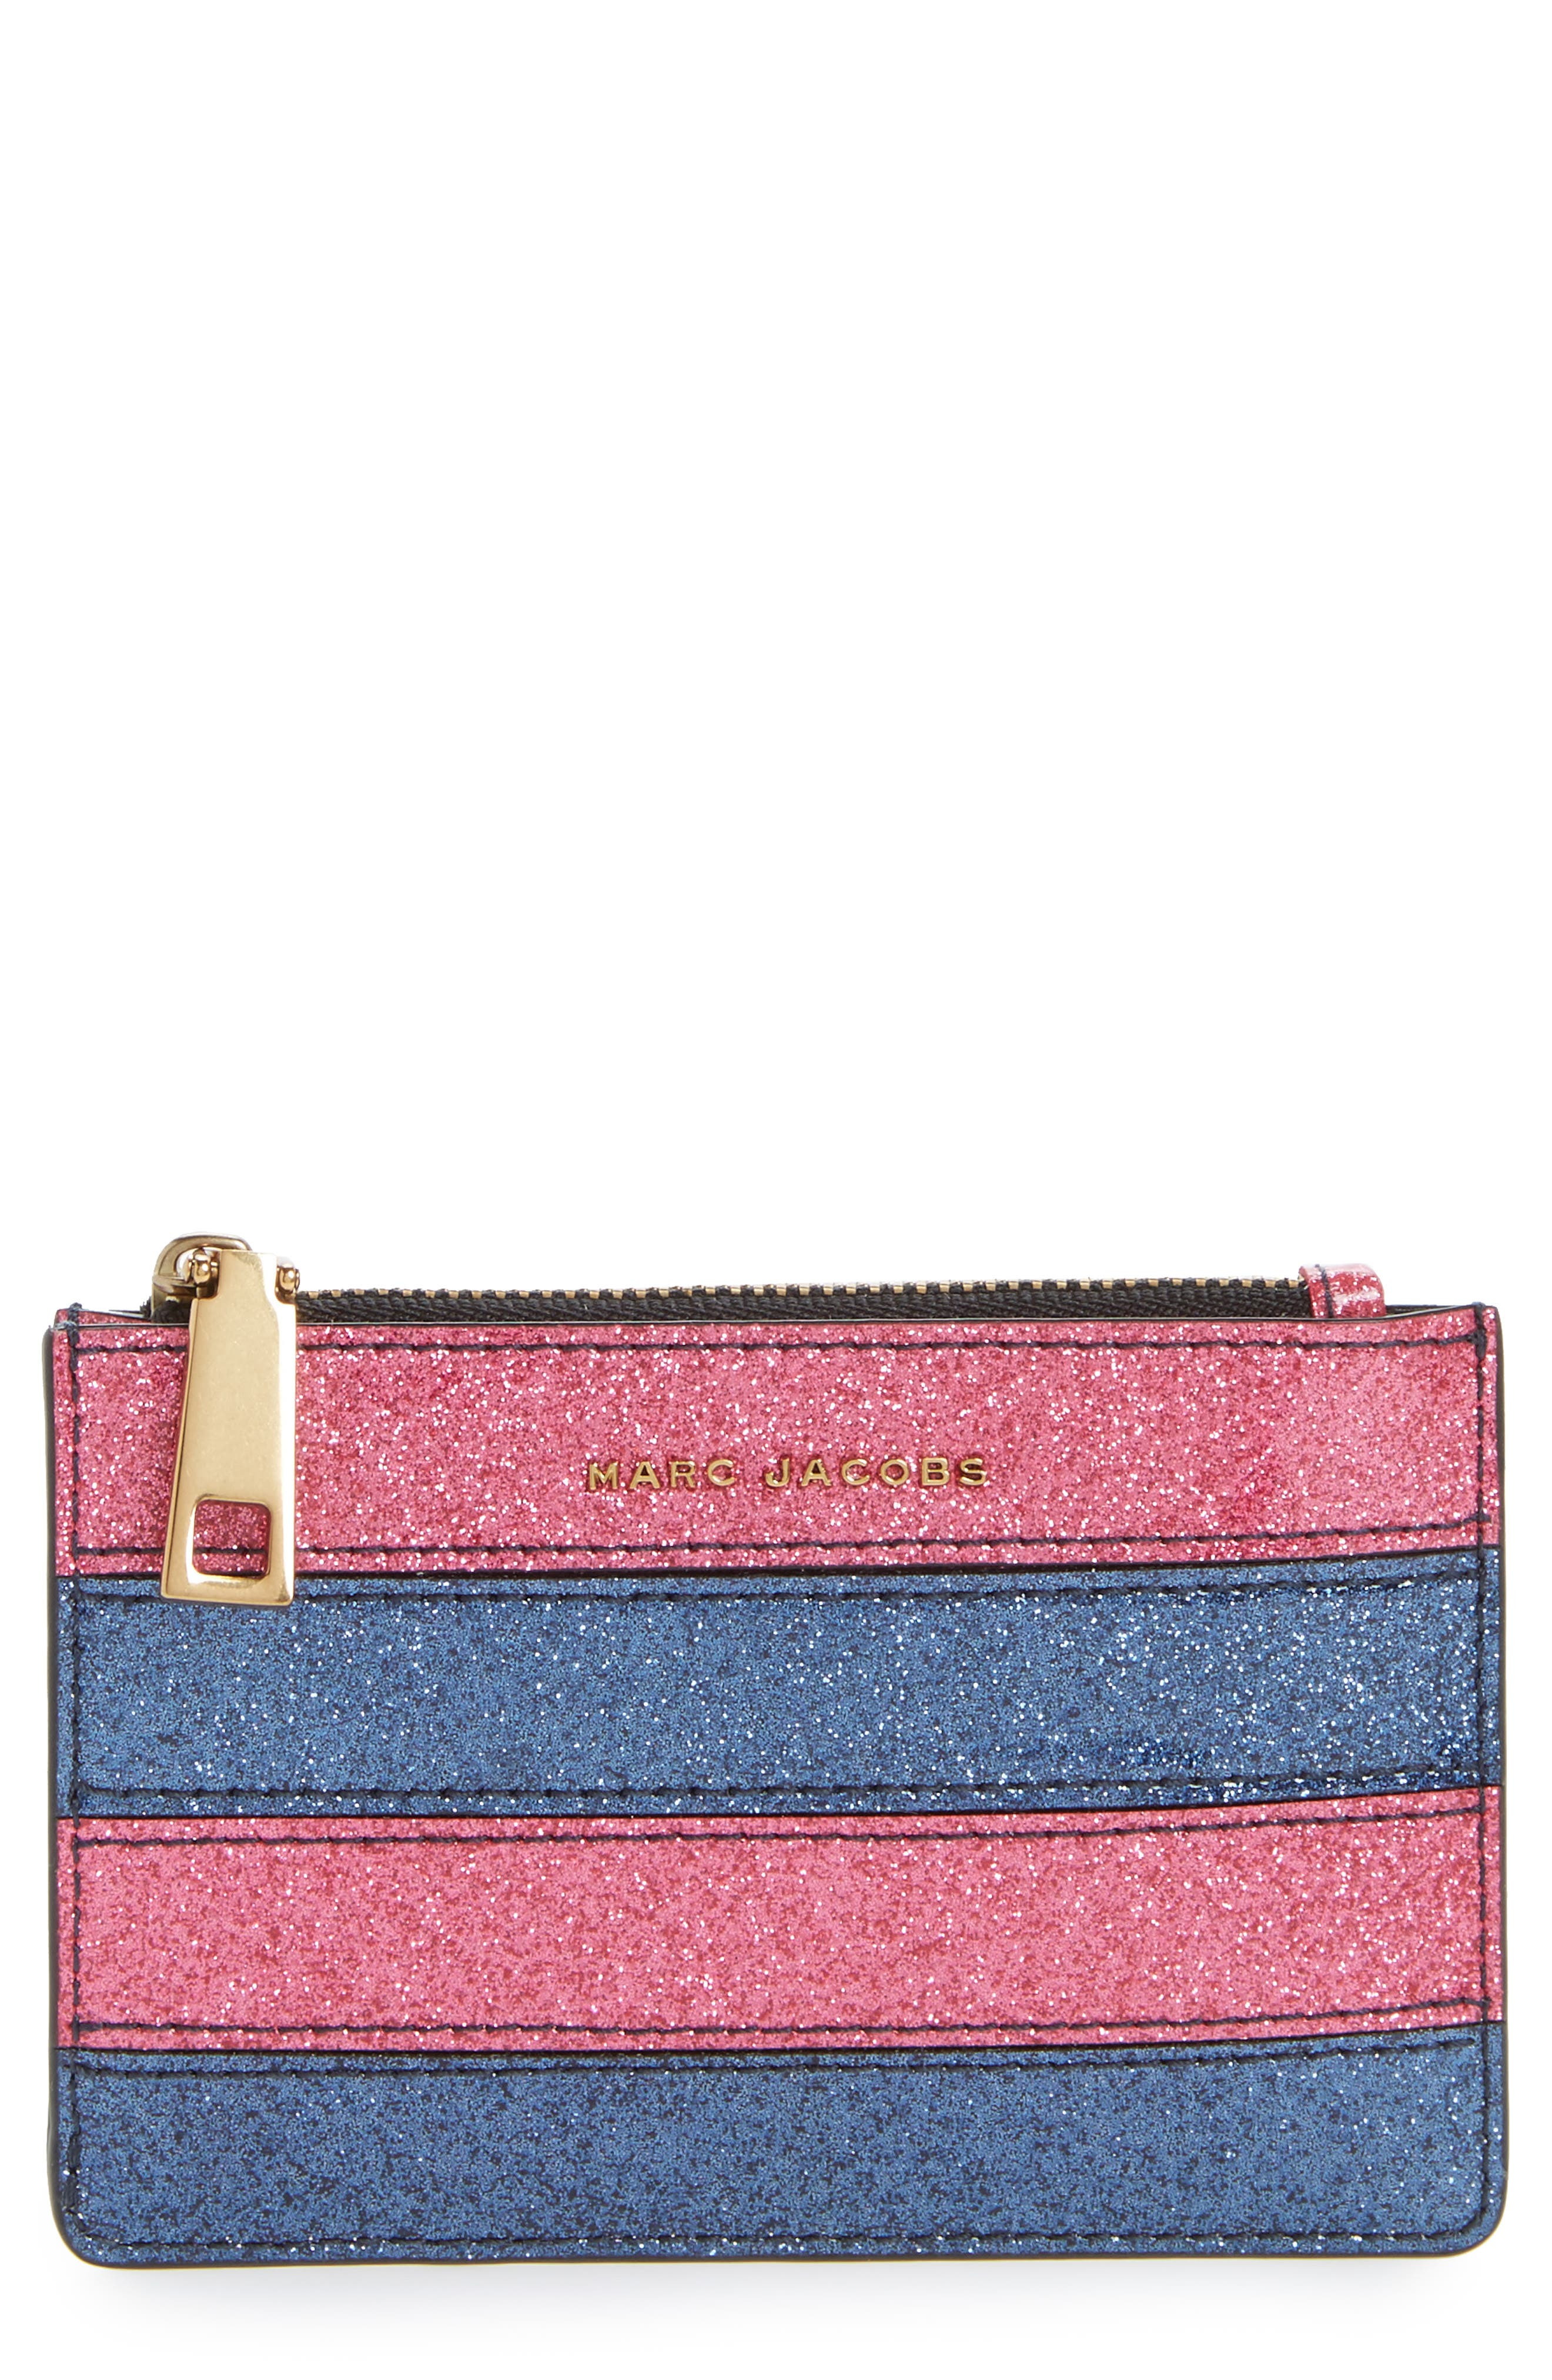 Alternate Image 1 Selected - MARC JACOBS Glitter Stripe Leather Wallet